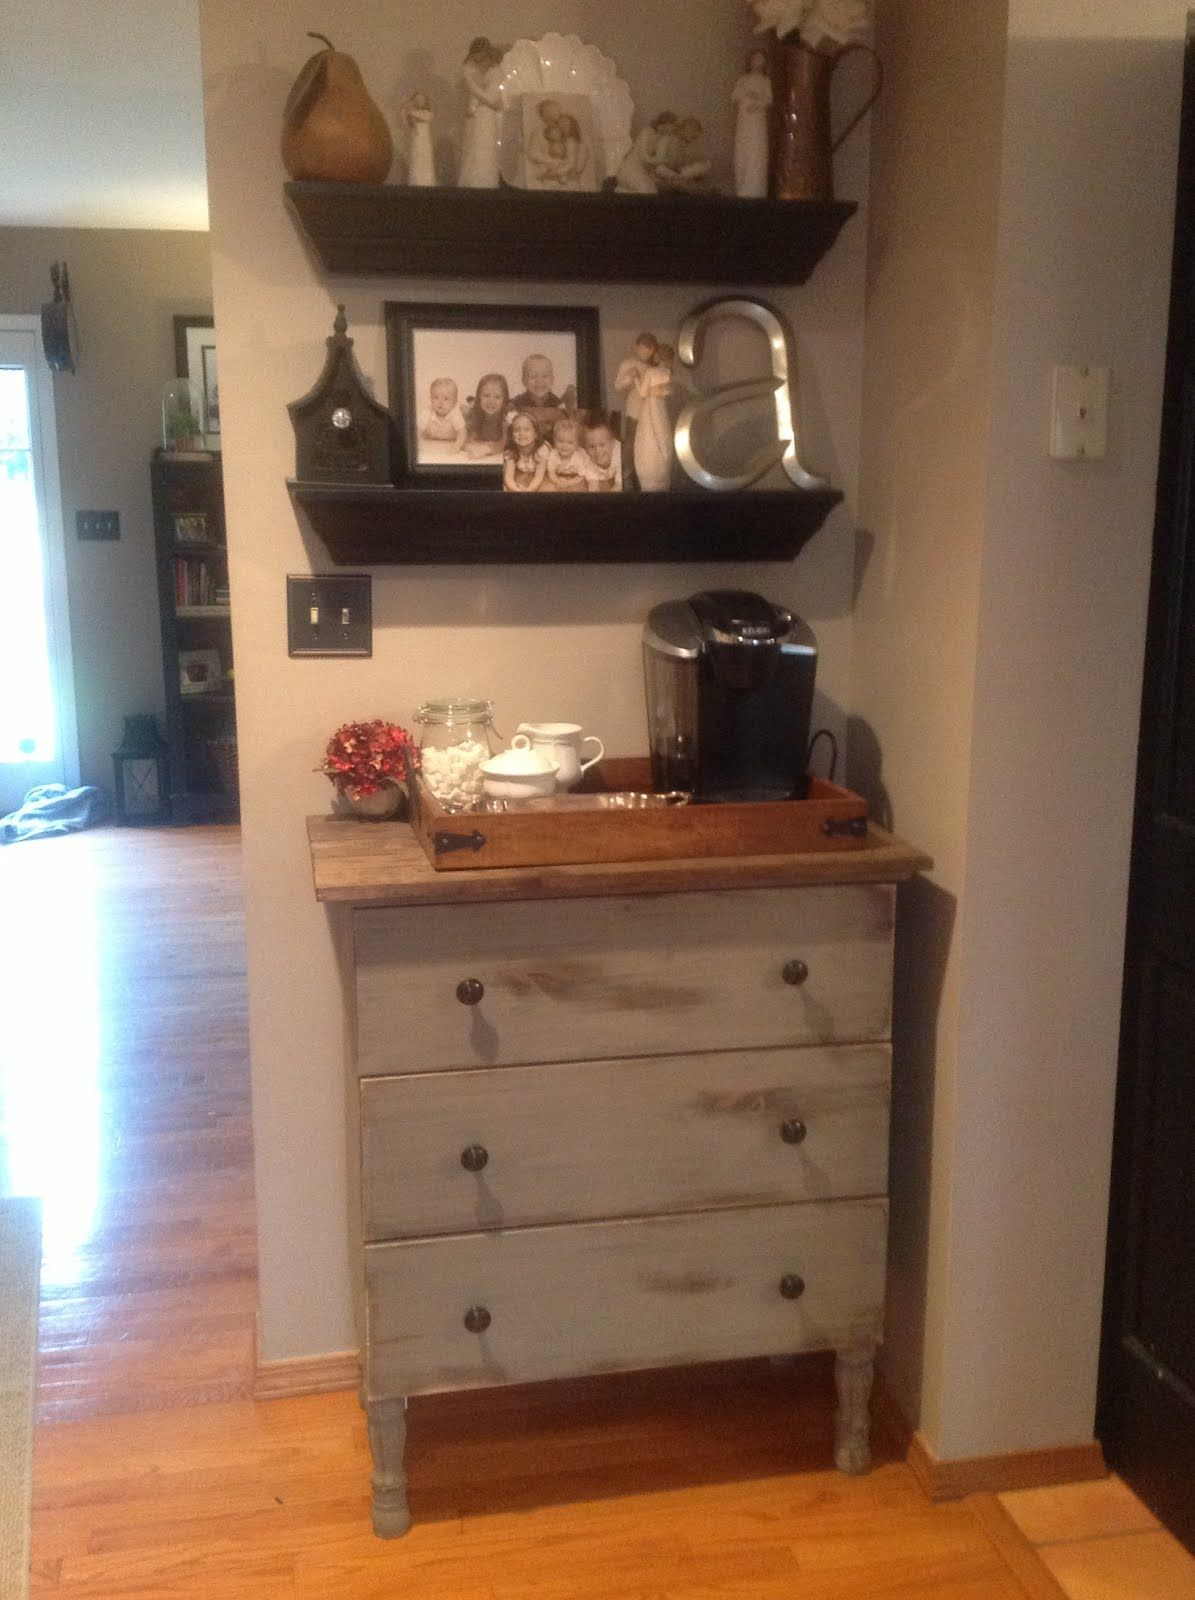 I Could Make A Coffee Station On Hemnes Dresser In Dressing Room For Getting Up The Morning IKEA Hackers TARVA Just Add Home Depot Legs